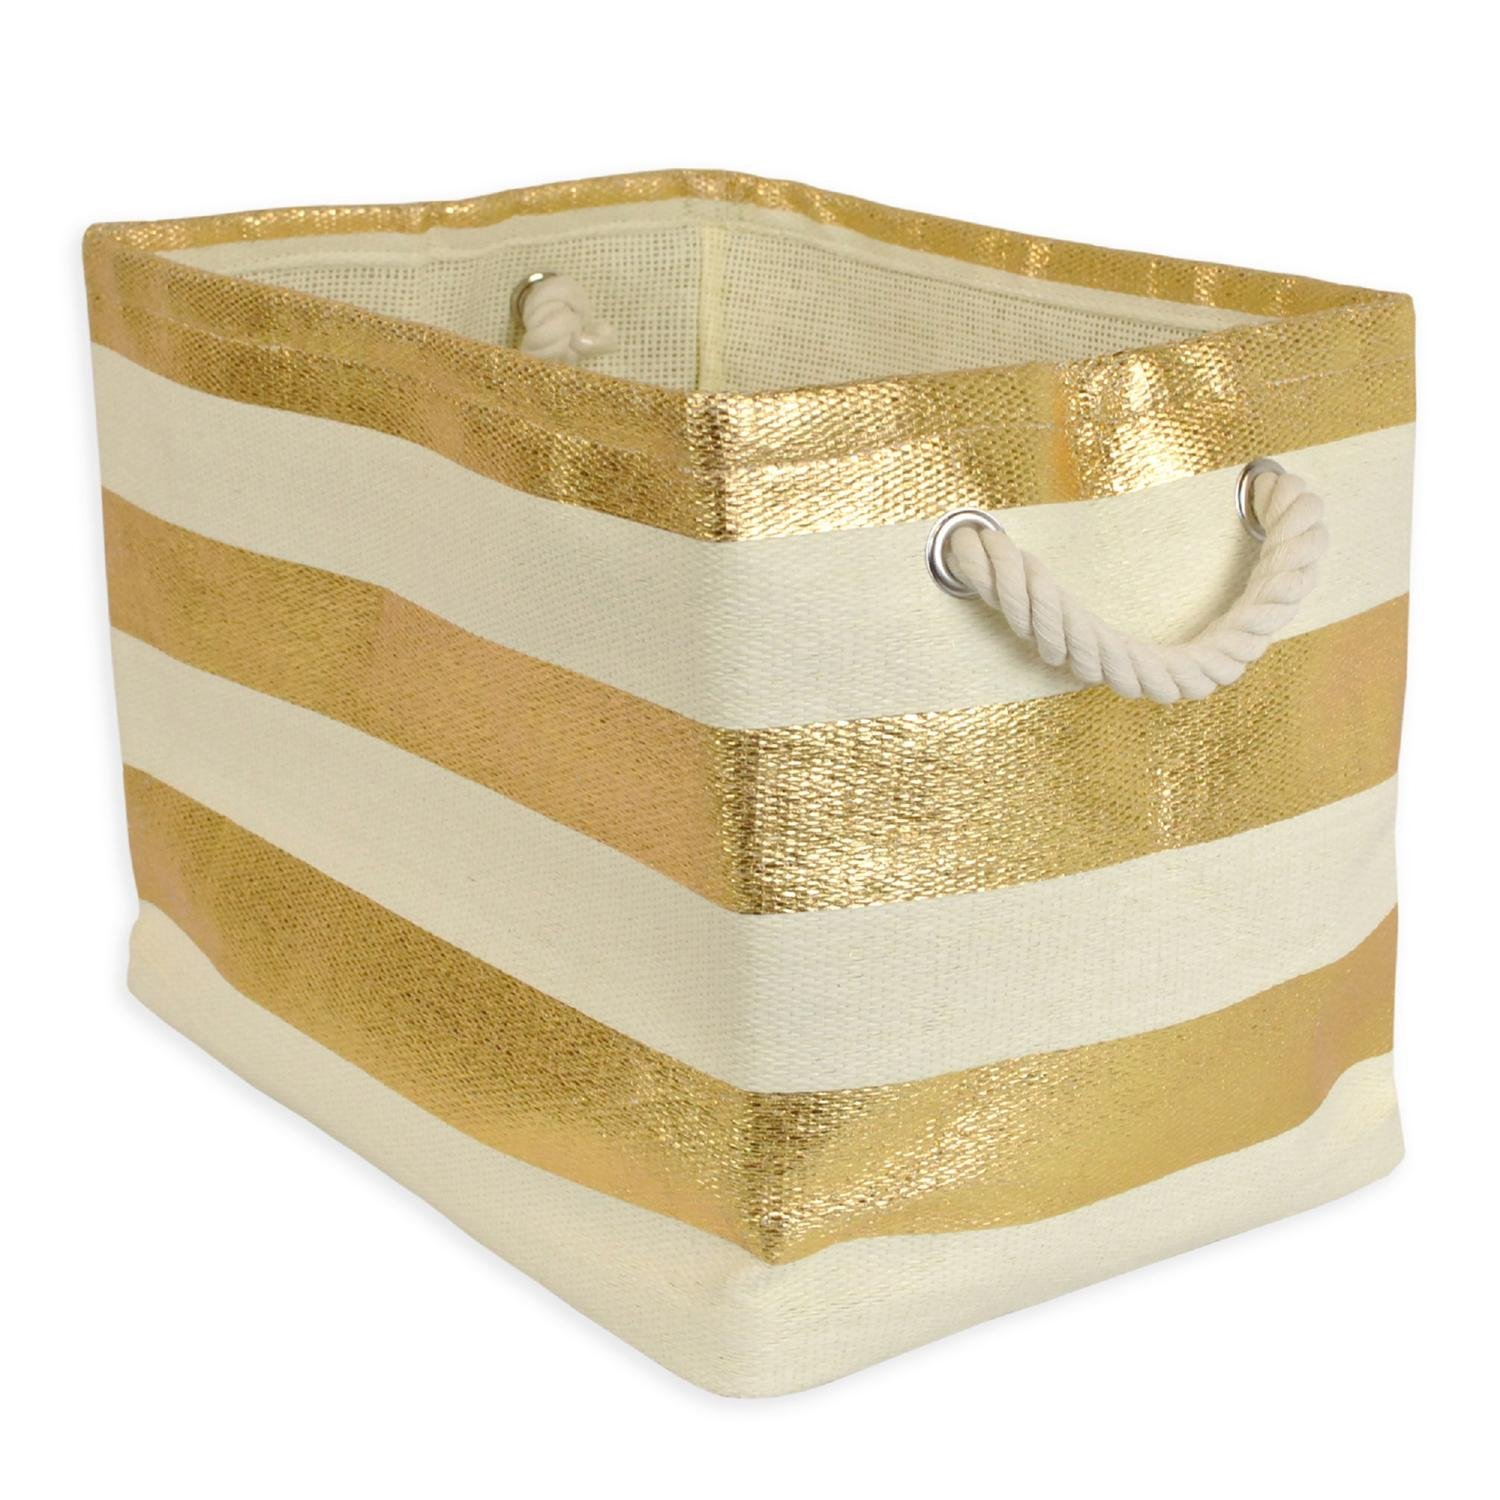 CC Home Furnishings 15'' Ivory White and Golden Colored Striped Patterned Large Sized Rectangular Paper Basket